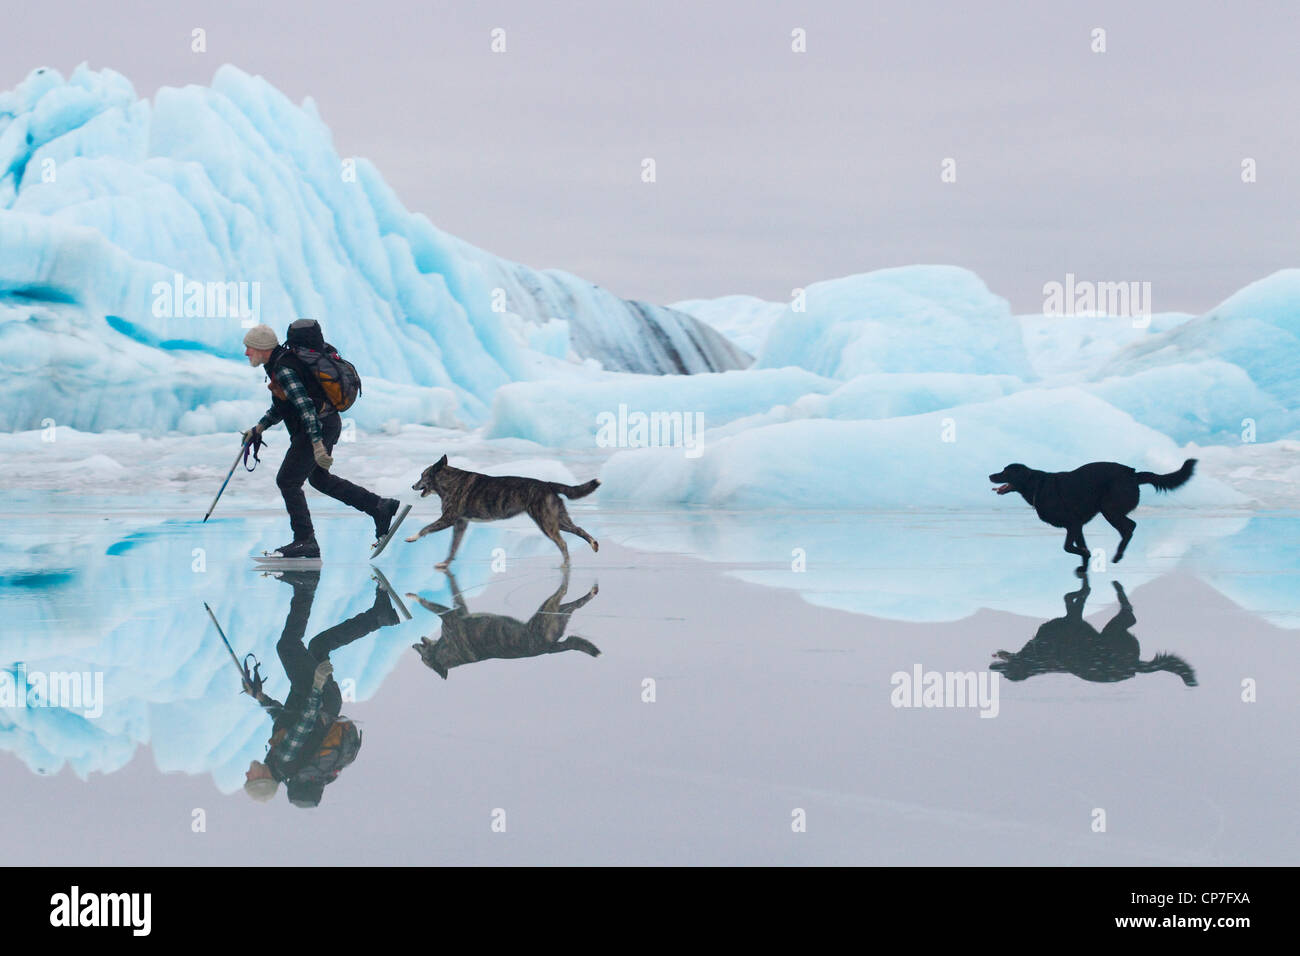 Man ice skating at Sheridan Glacier with two dogs with ice and icebergs in the background, Cordova, Alaska - Stock Image